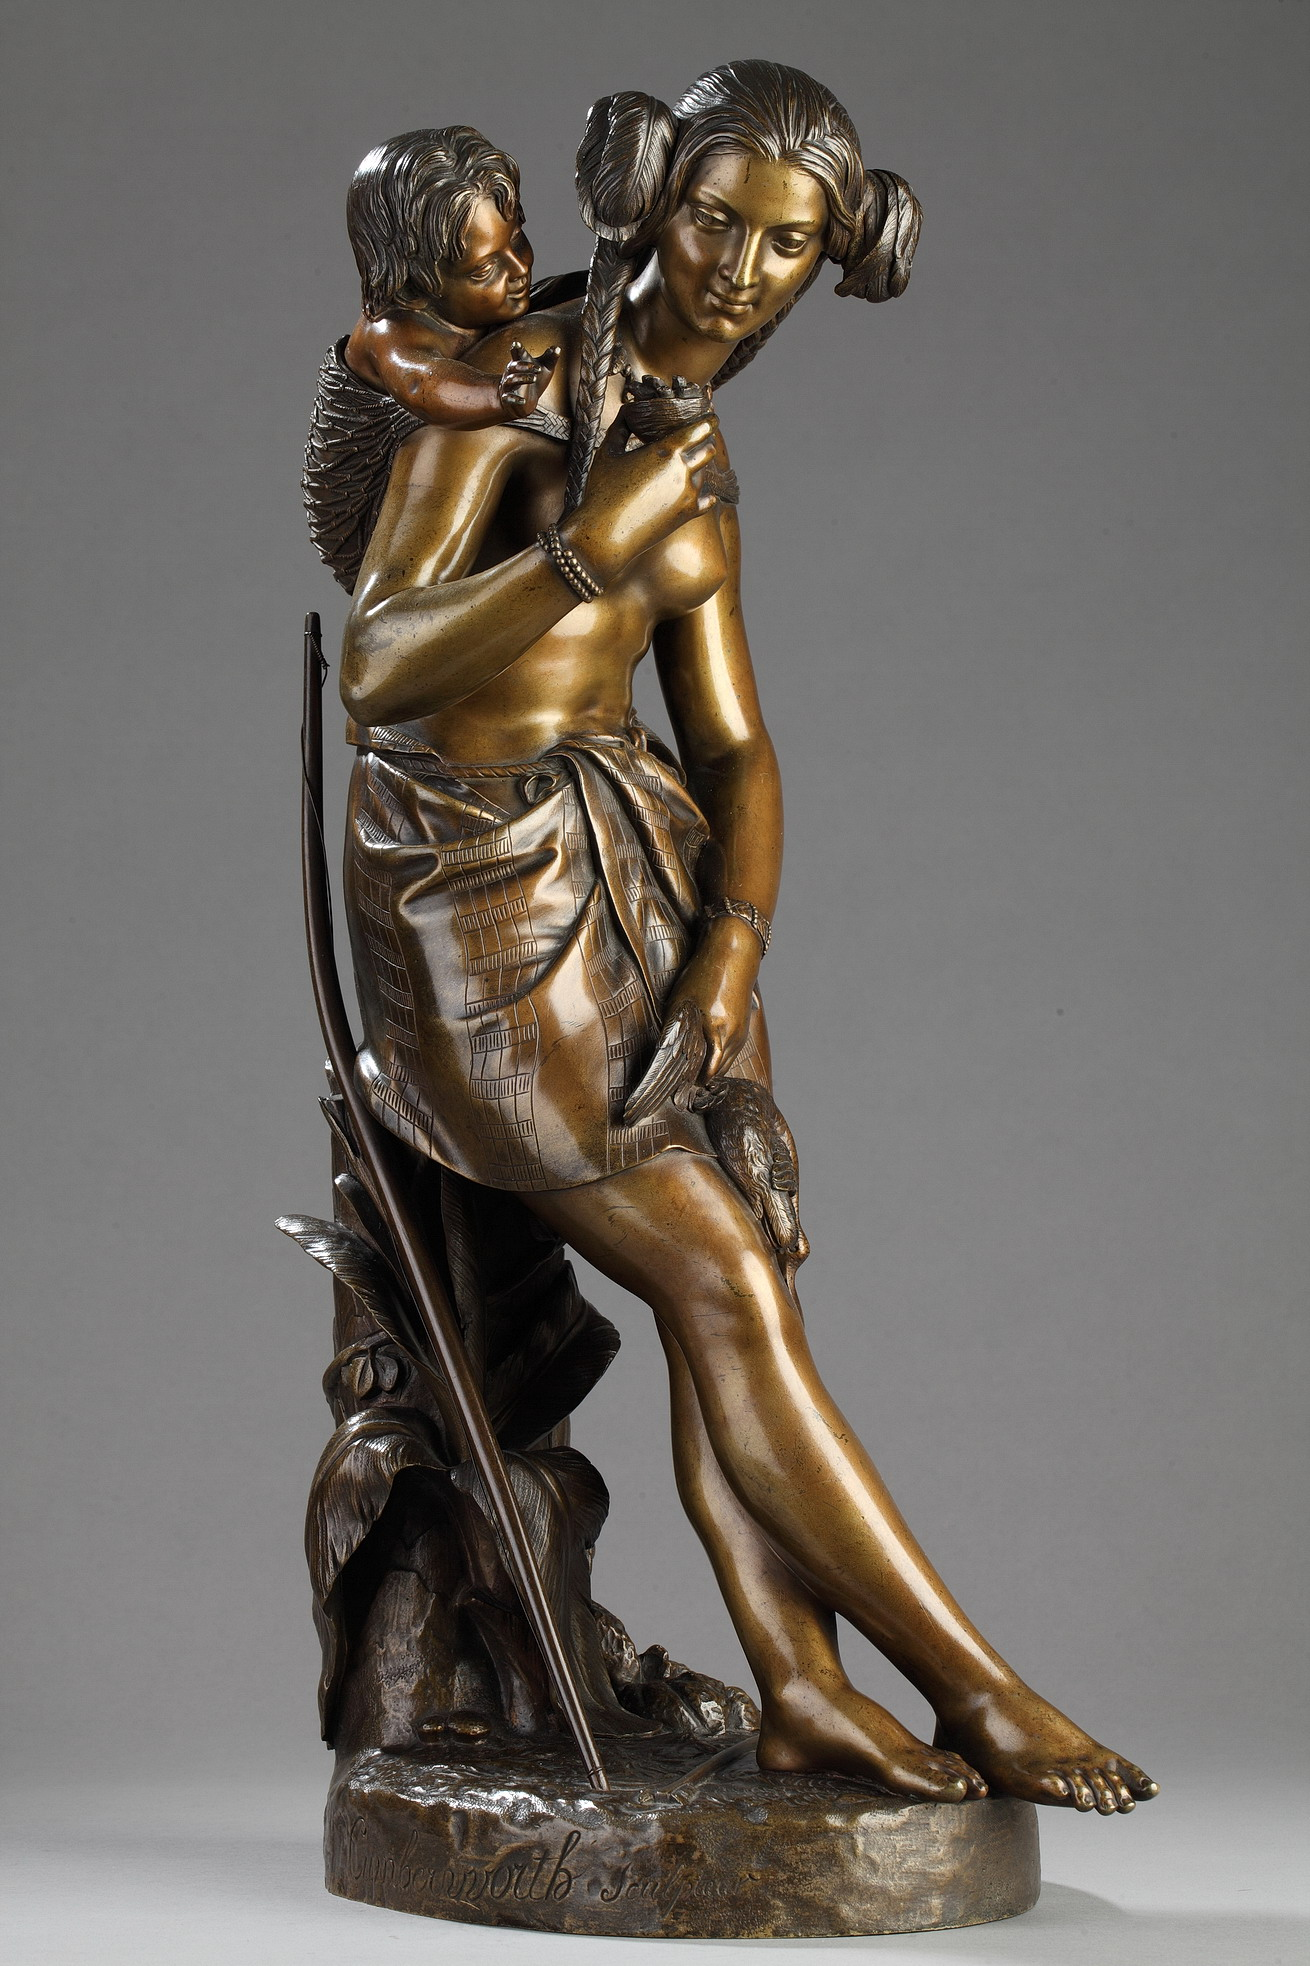 Charles Cumberworth (1811-1852), Chasseresse indienne, bronze à double patines, haut. 52 cm, sculptures - galerie Tourbillon, Paris